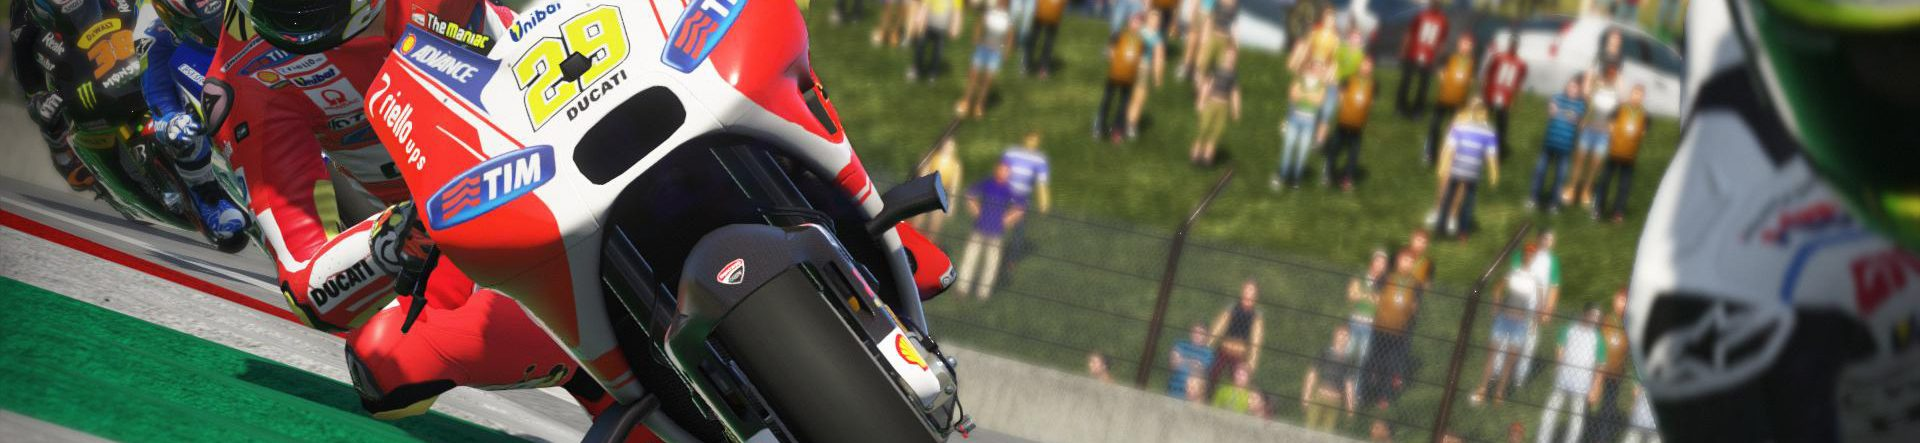 MotoGP 15 Compact rides onto PS4, PS3 and Steam - Team VVV